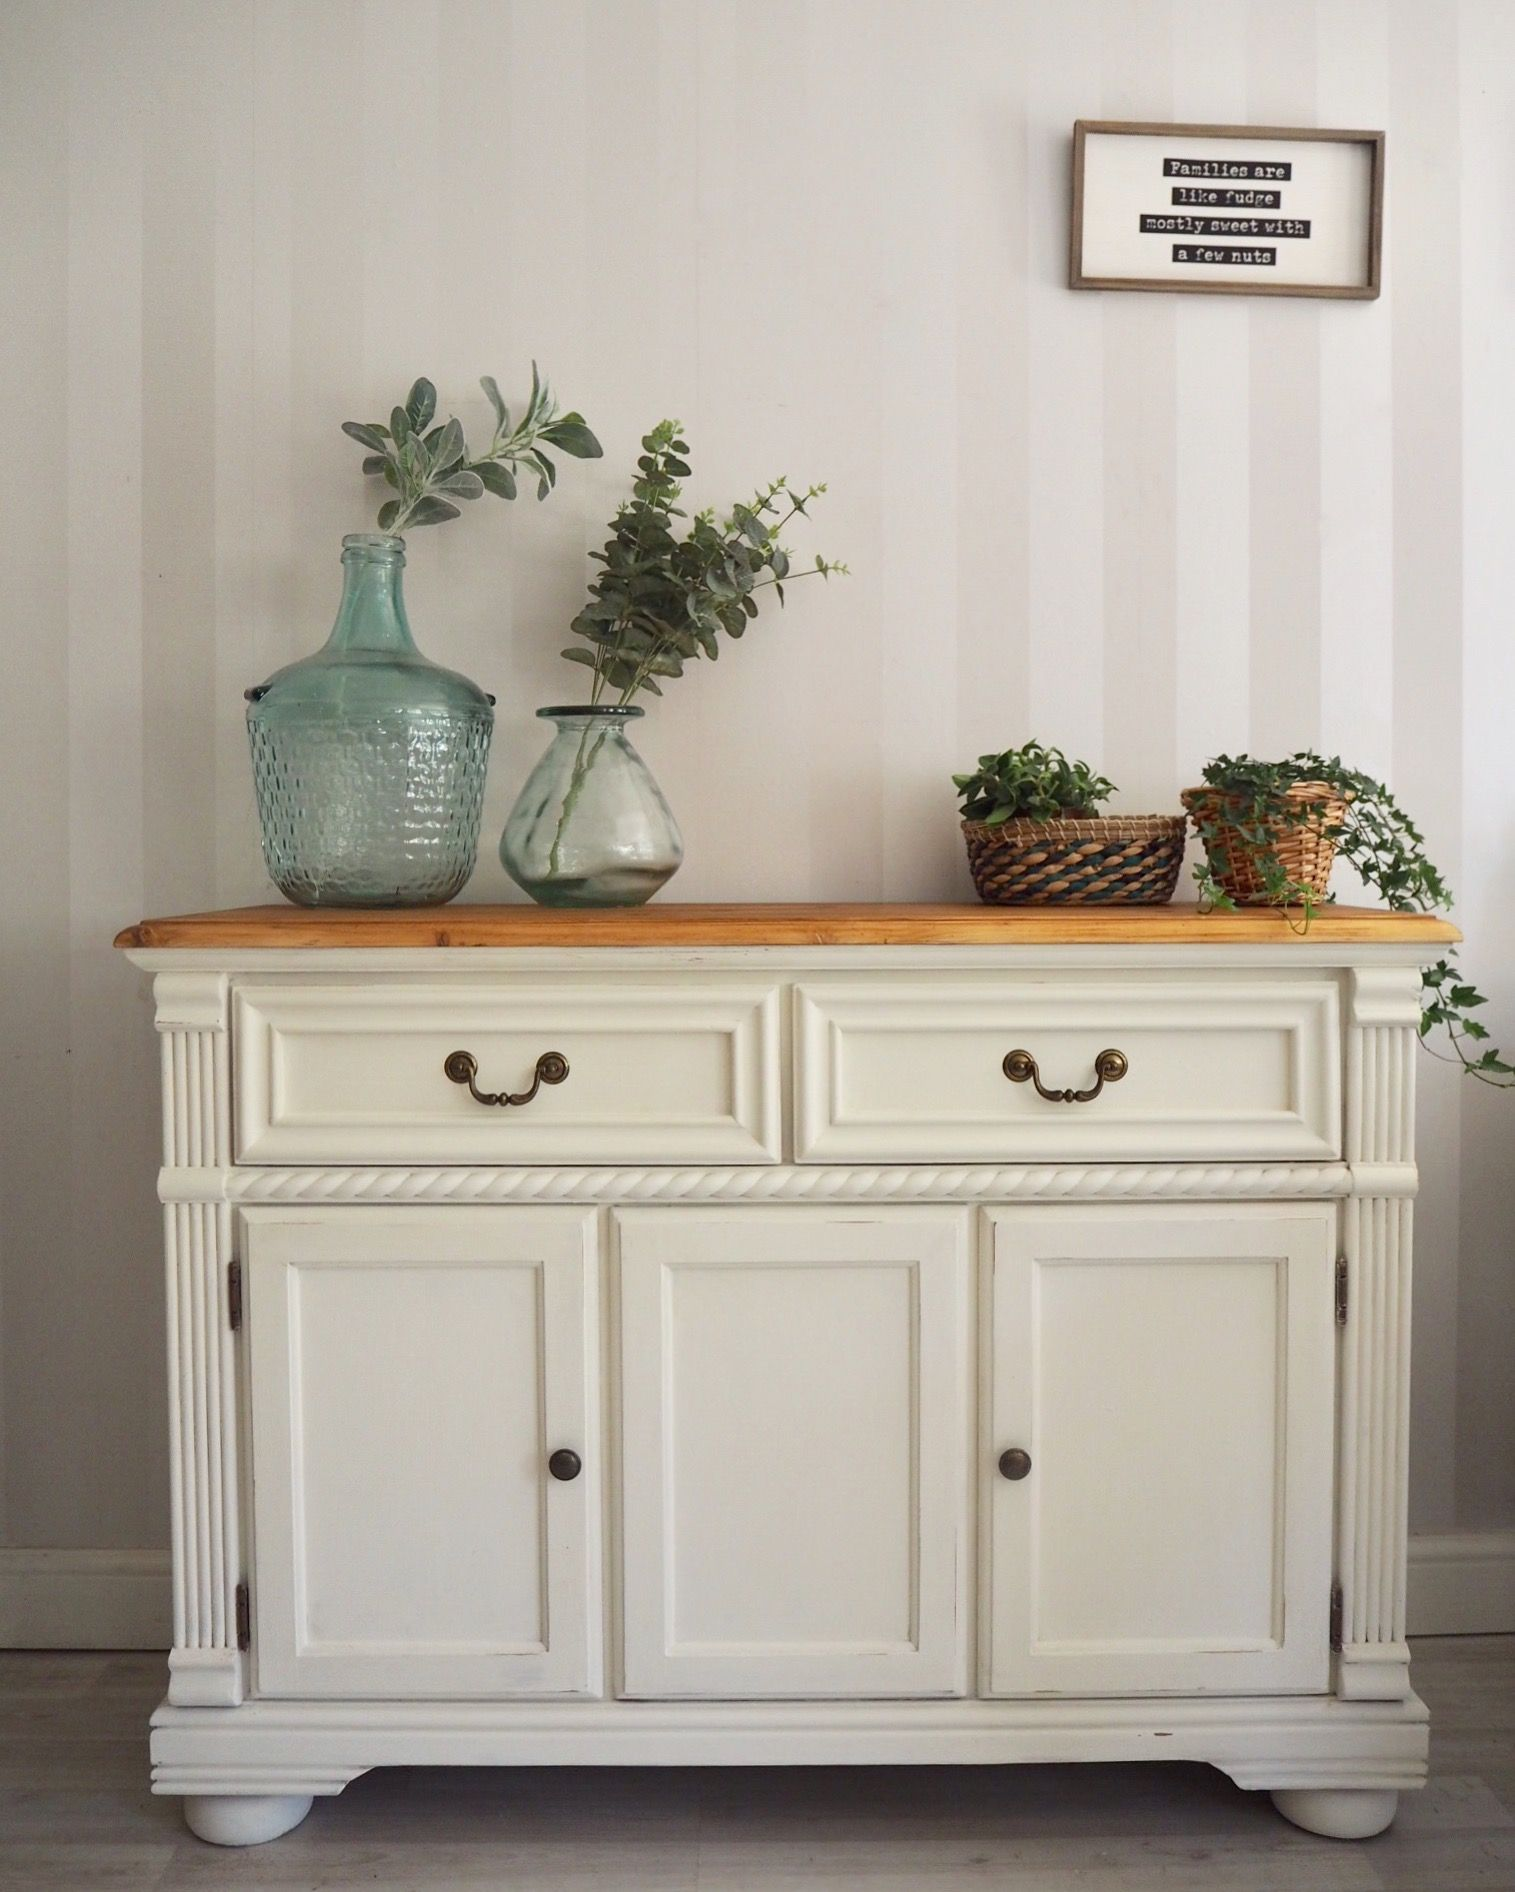 240 Annie Sloan Chalk Paint Projects Ideas In 2021 Painted Furniture